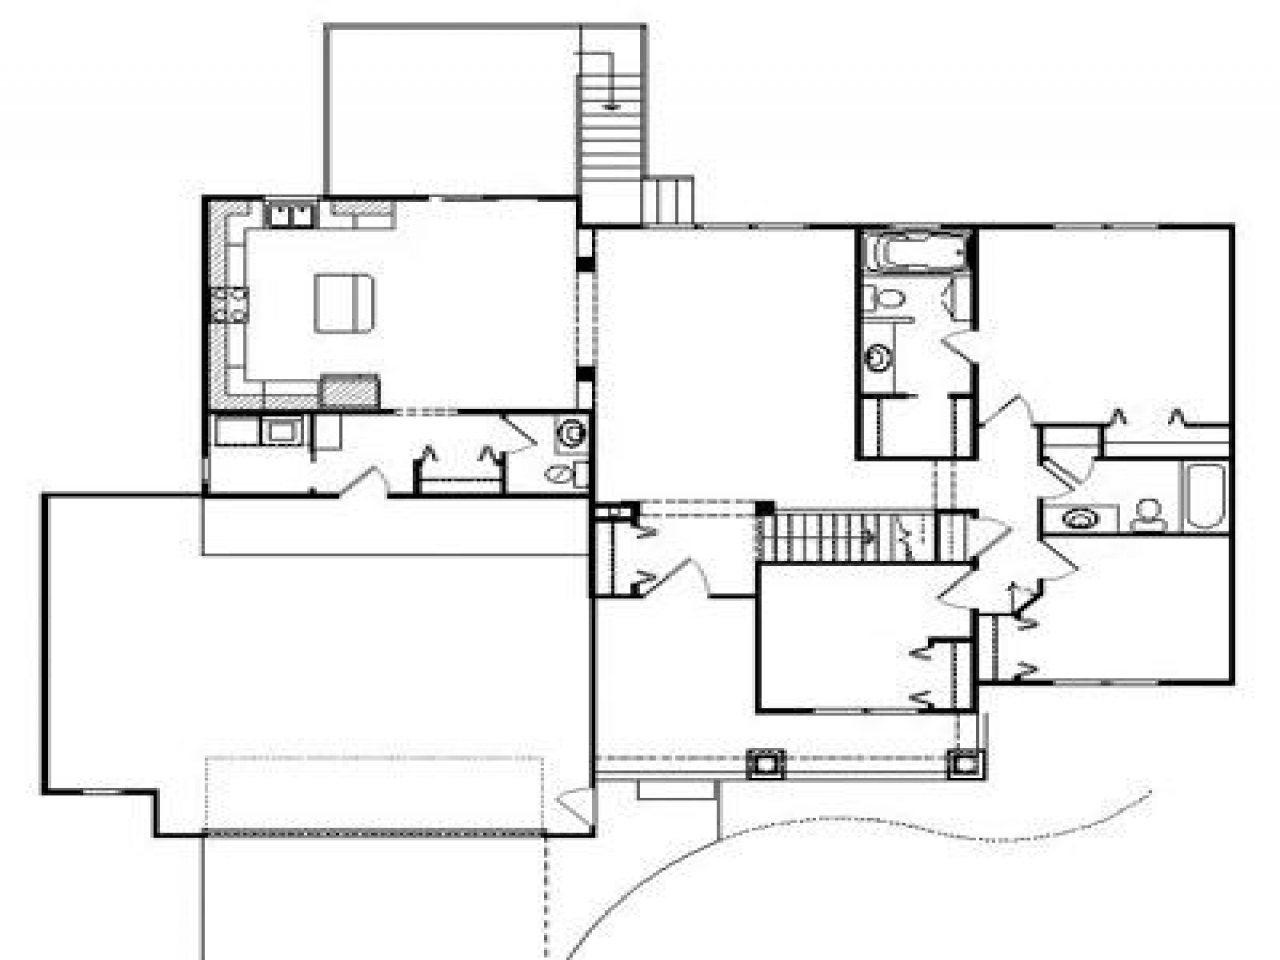 Plantation house floor plan southern style plantation for Plantation house floor plans